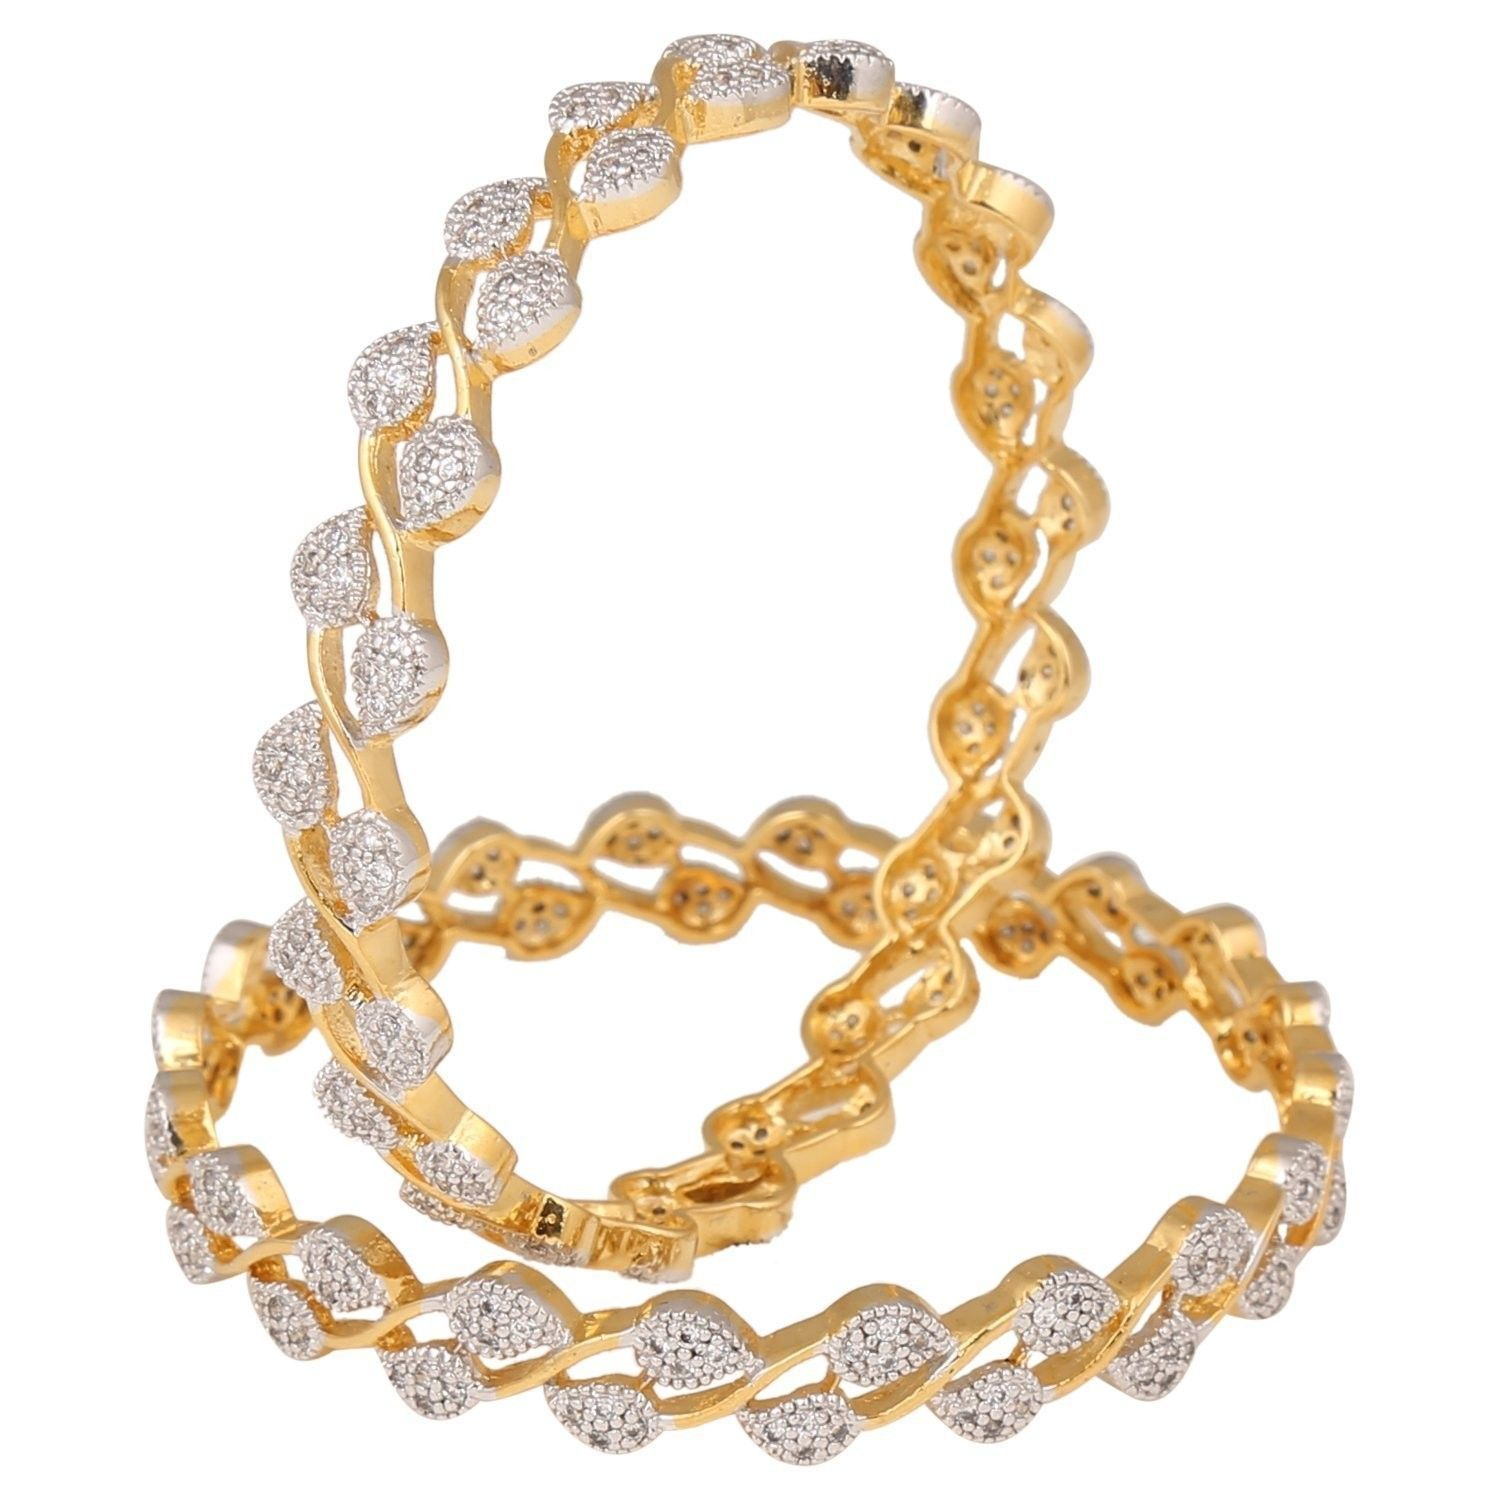 Fashion jewelry gold plated set of indian bangles kada for women